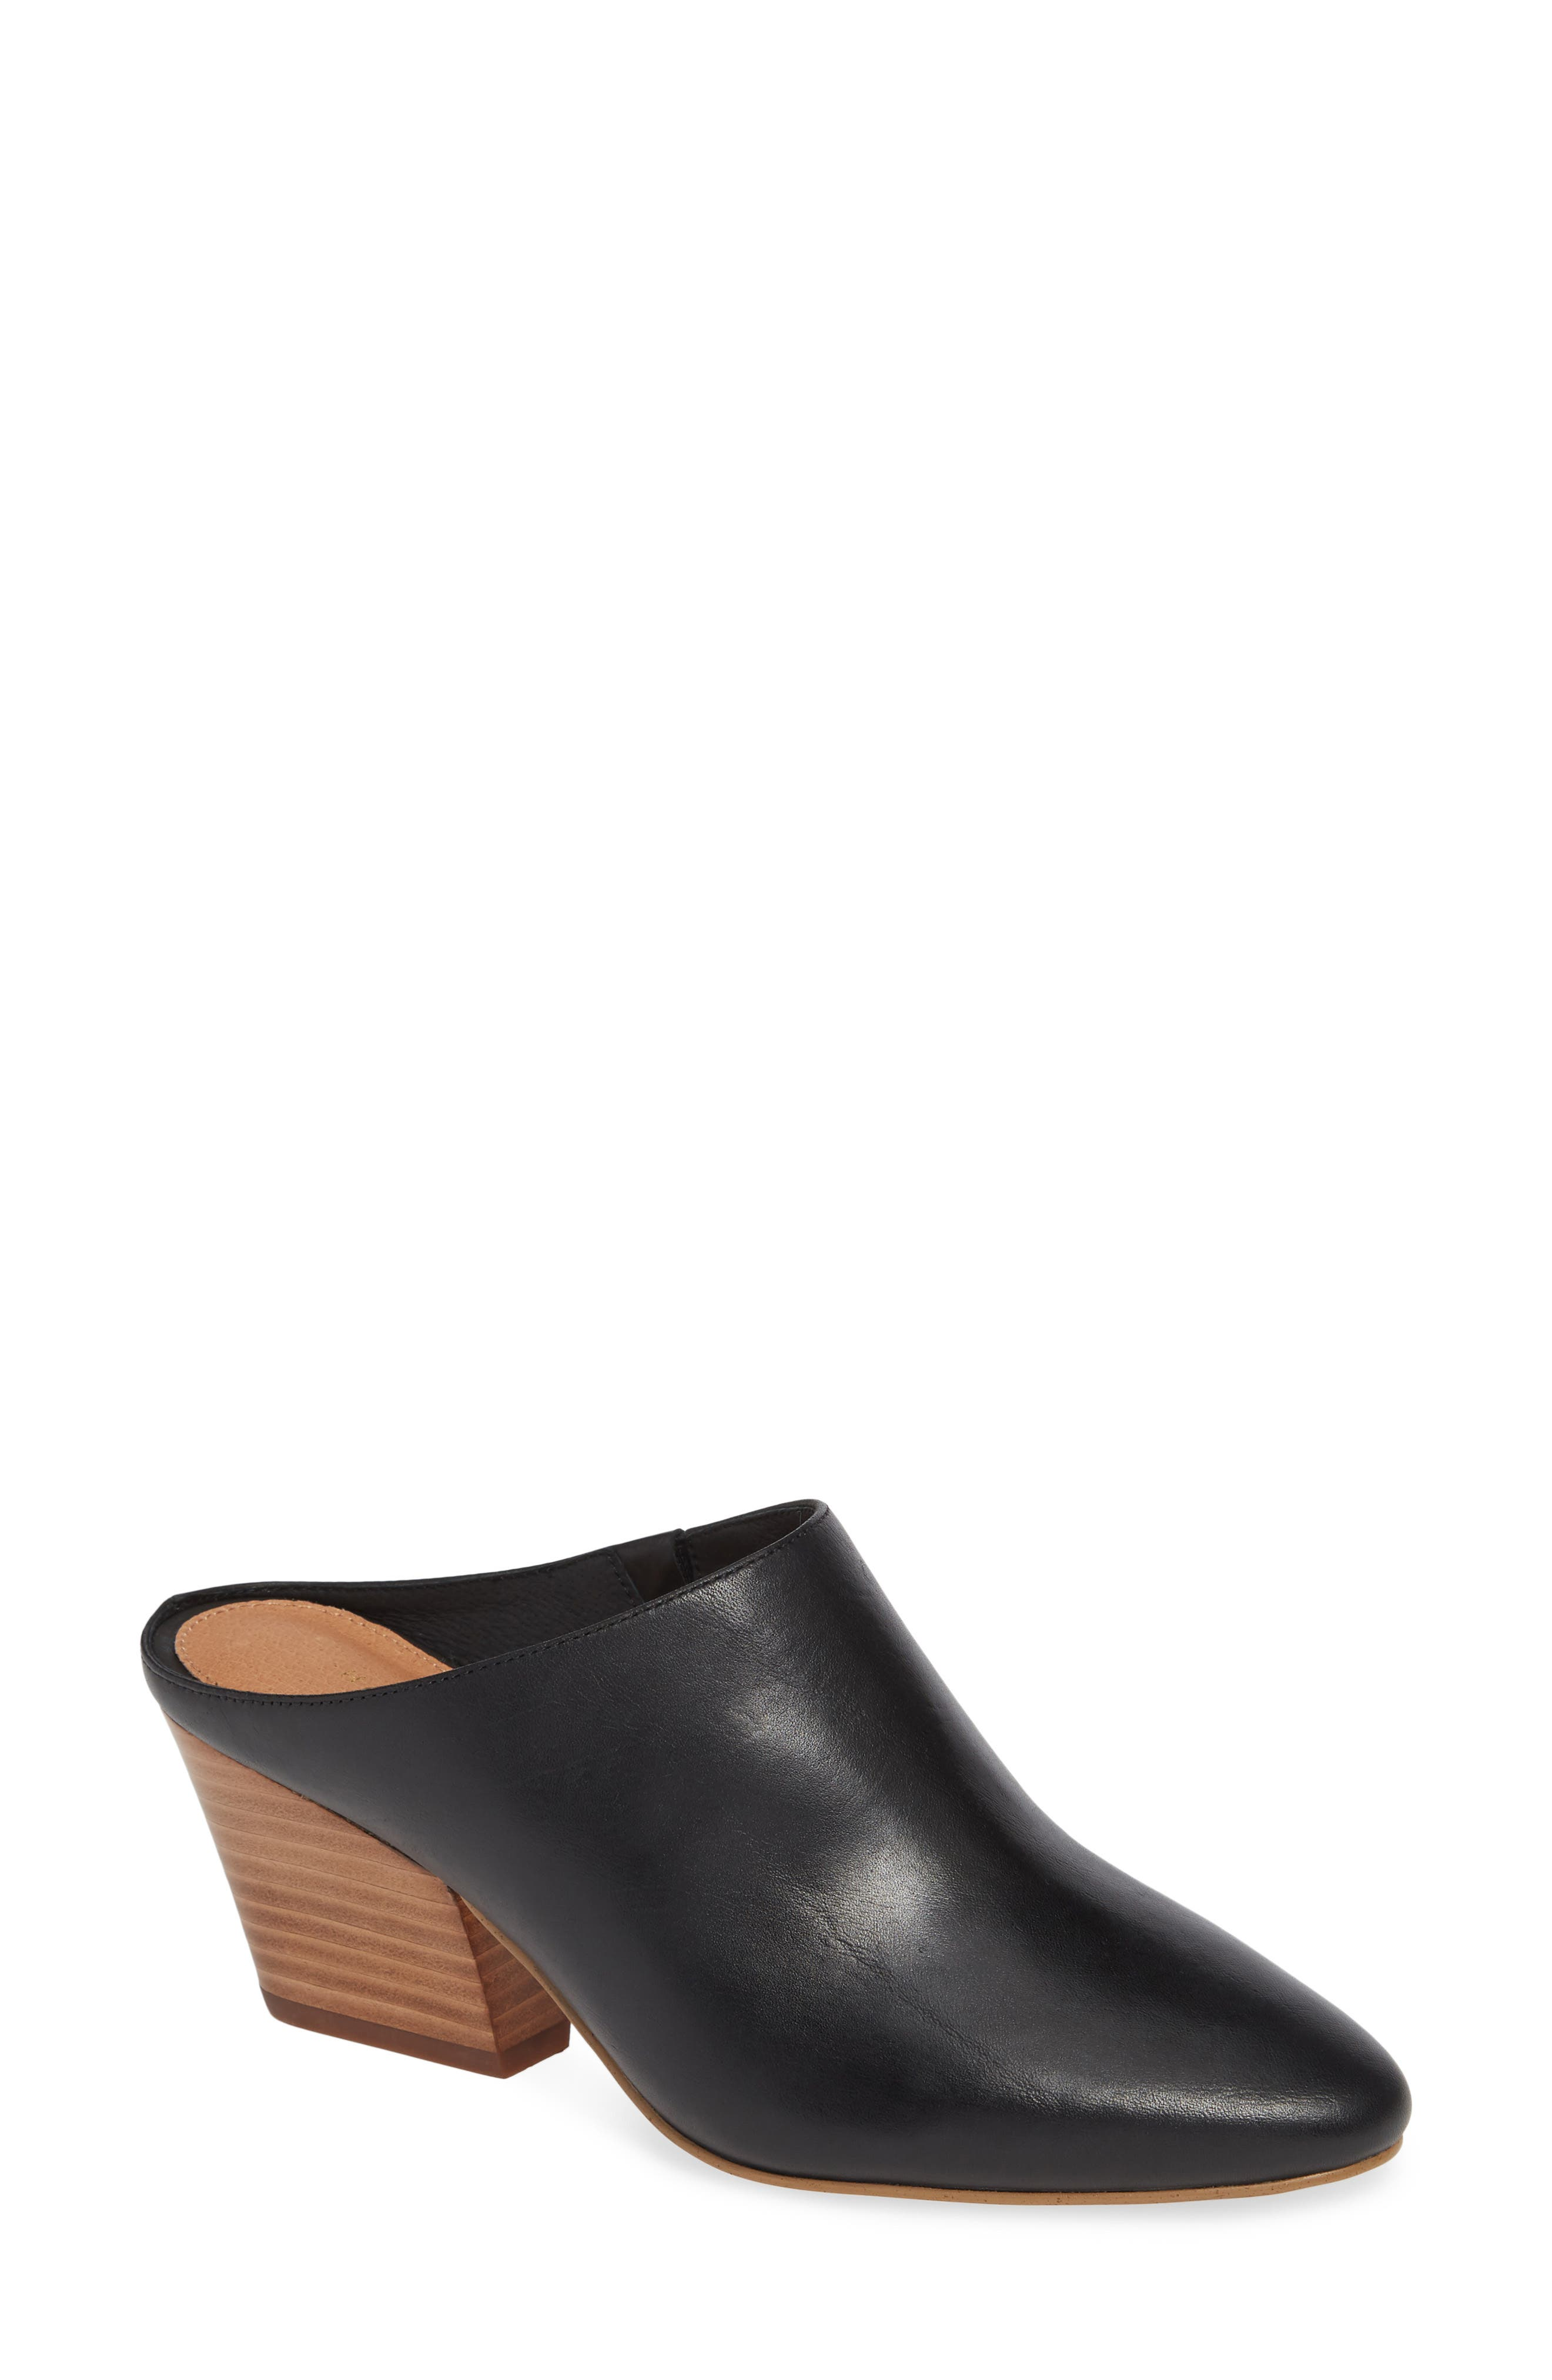 HALOGEN<SUP>®</SUP> Brielle Mule, Main, color, BLACK LEATHER